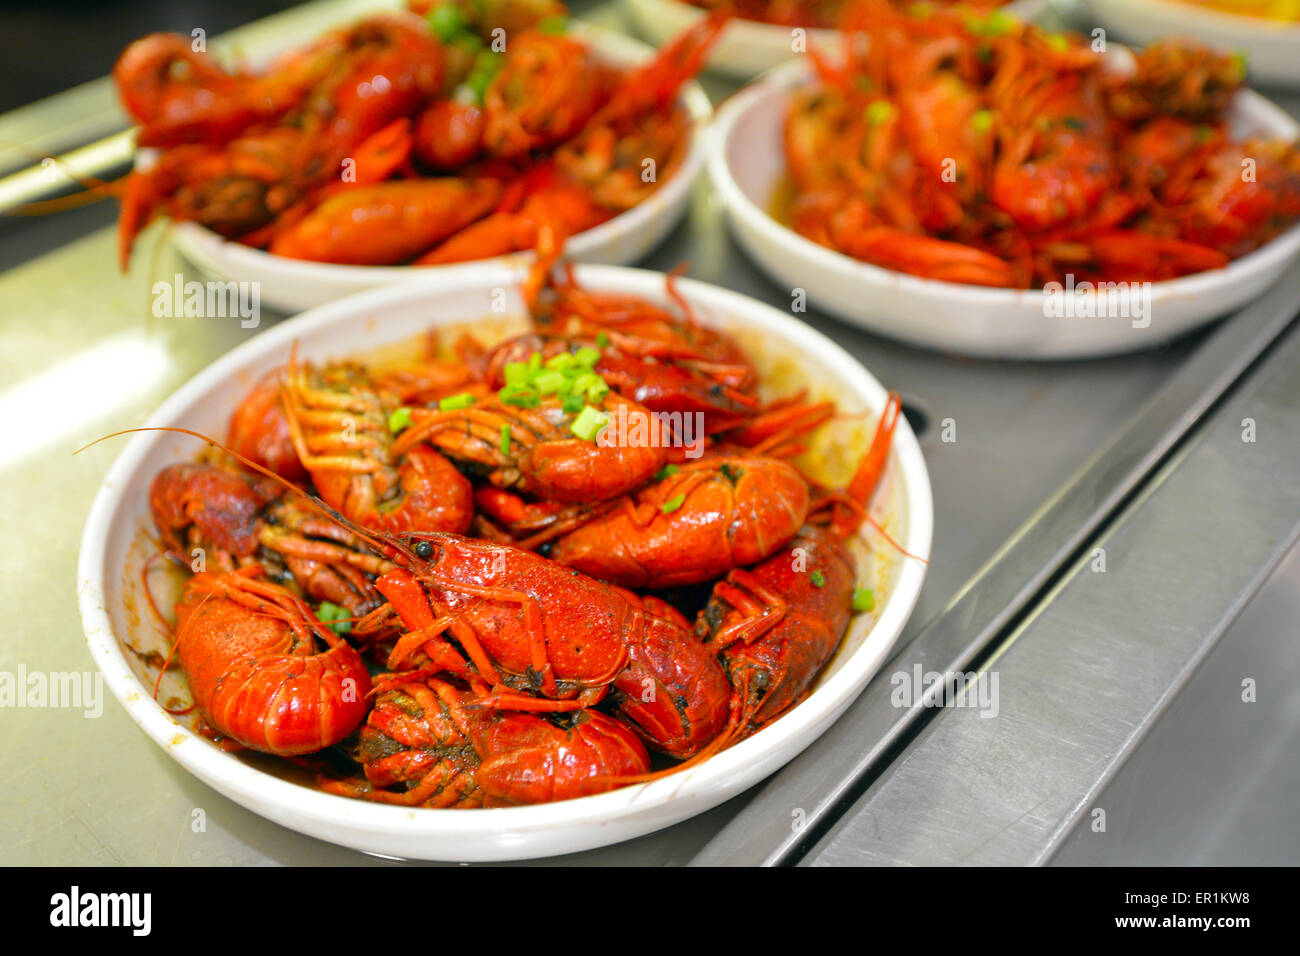 Prawns dish on display in a food market in Shanghai China. - Stock Image